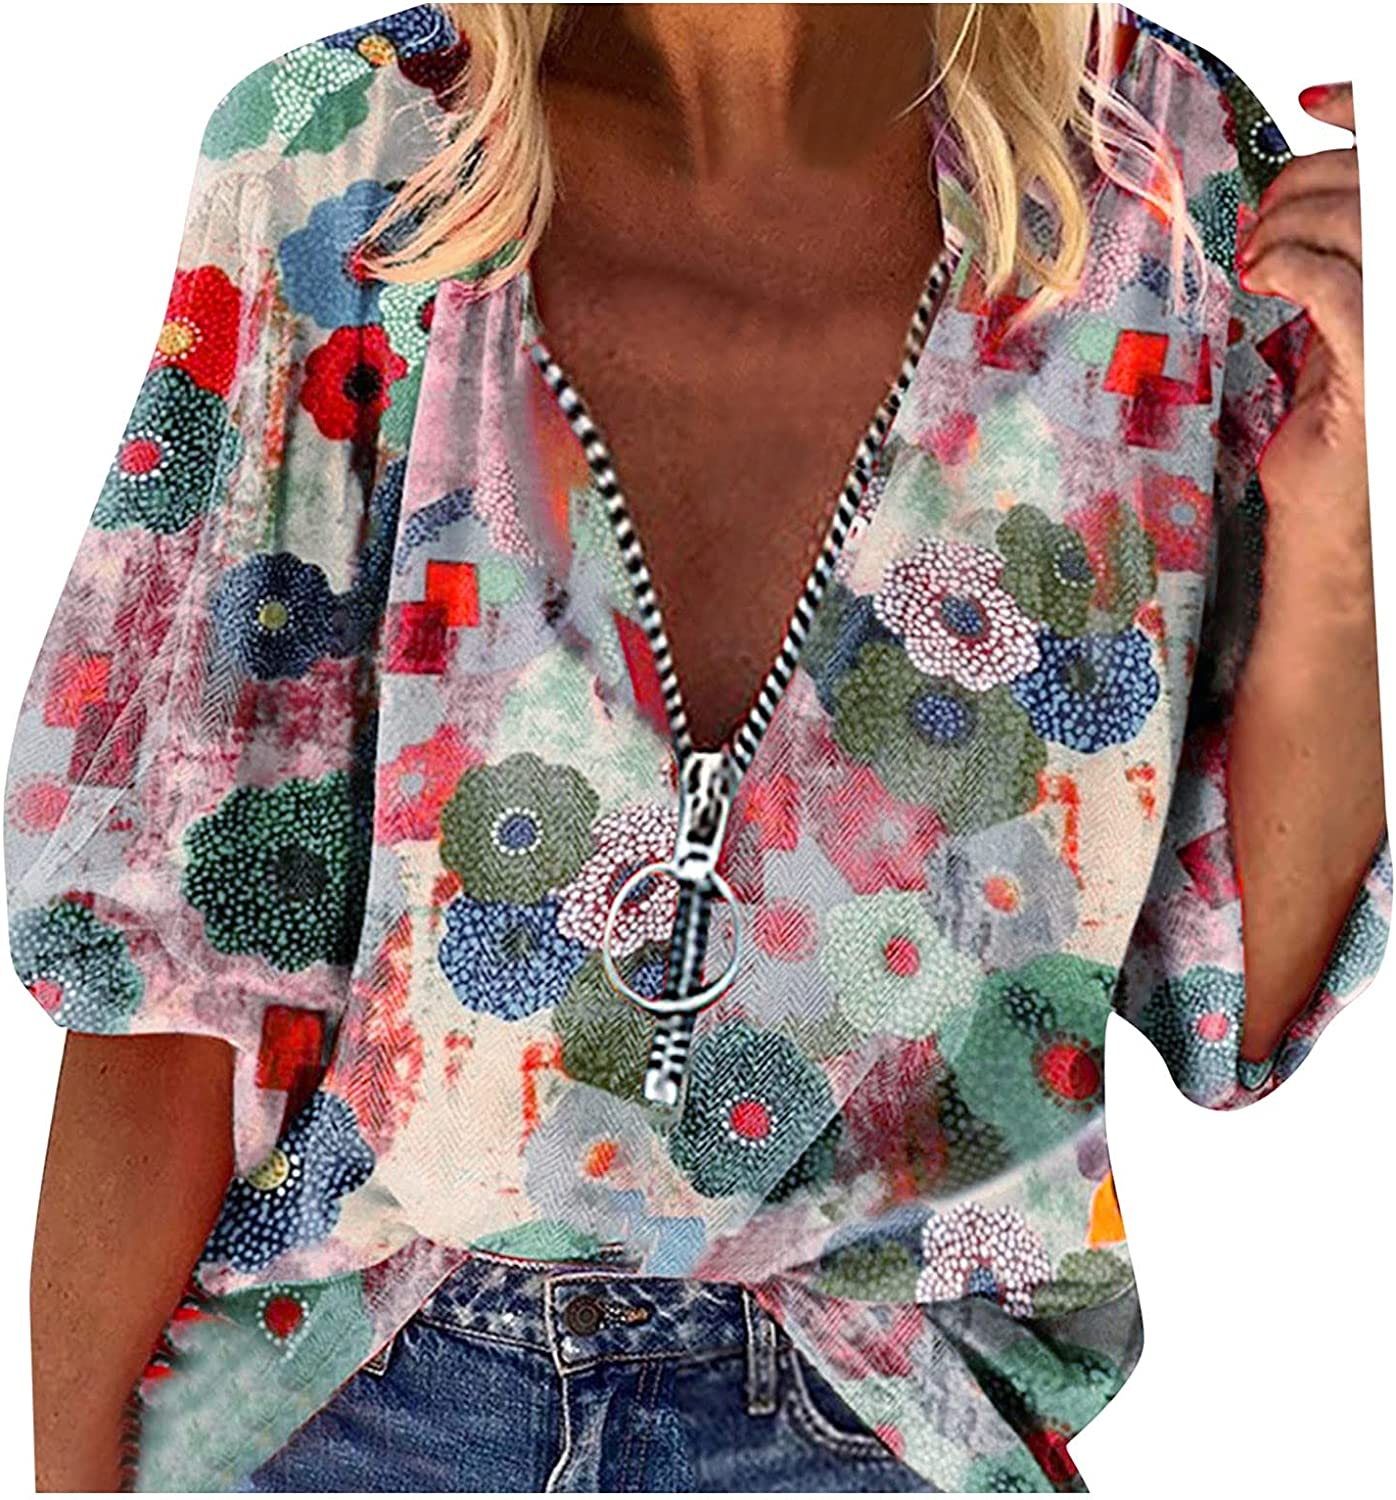 Summer Tops for Women Casual Short Sleeve Summer Tshirt Sexy Zipper V Neck Blouse Fashion Tunic Tops Plus Size